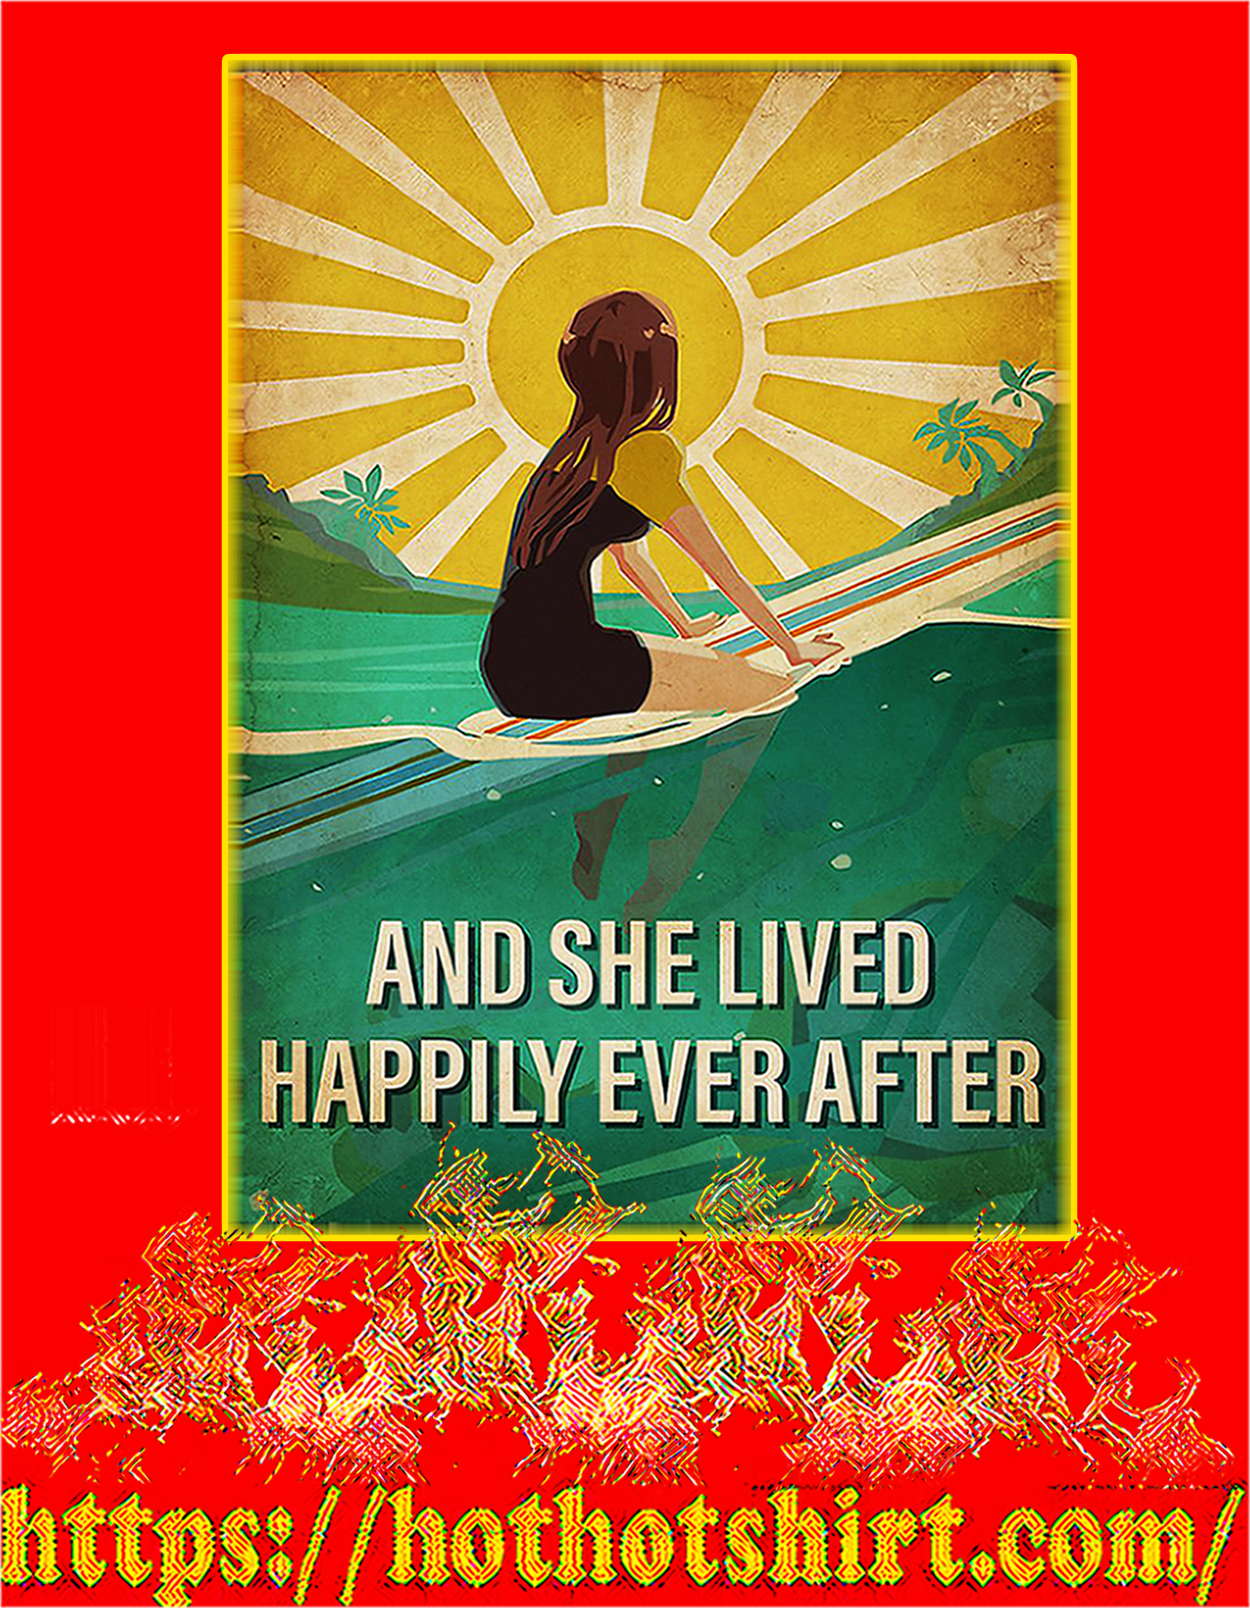 Surfing And she lived happily ever after poster - A2